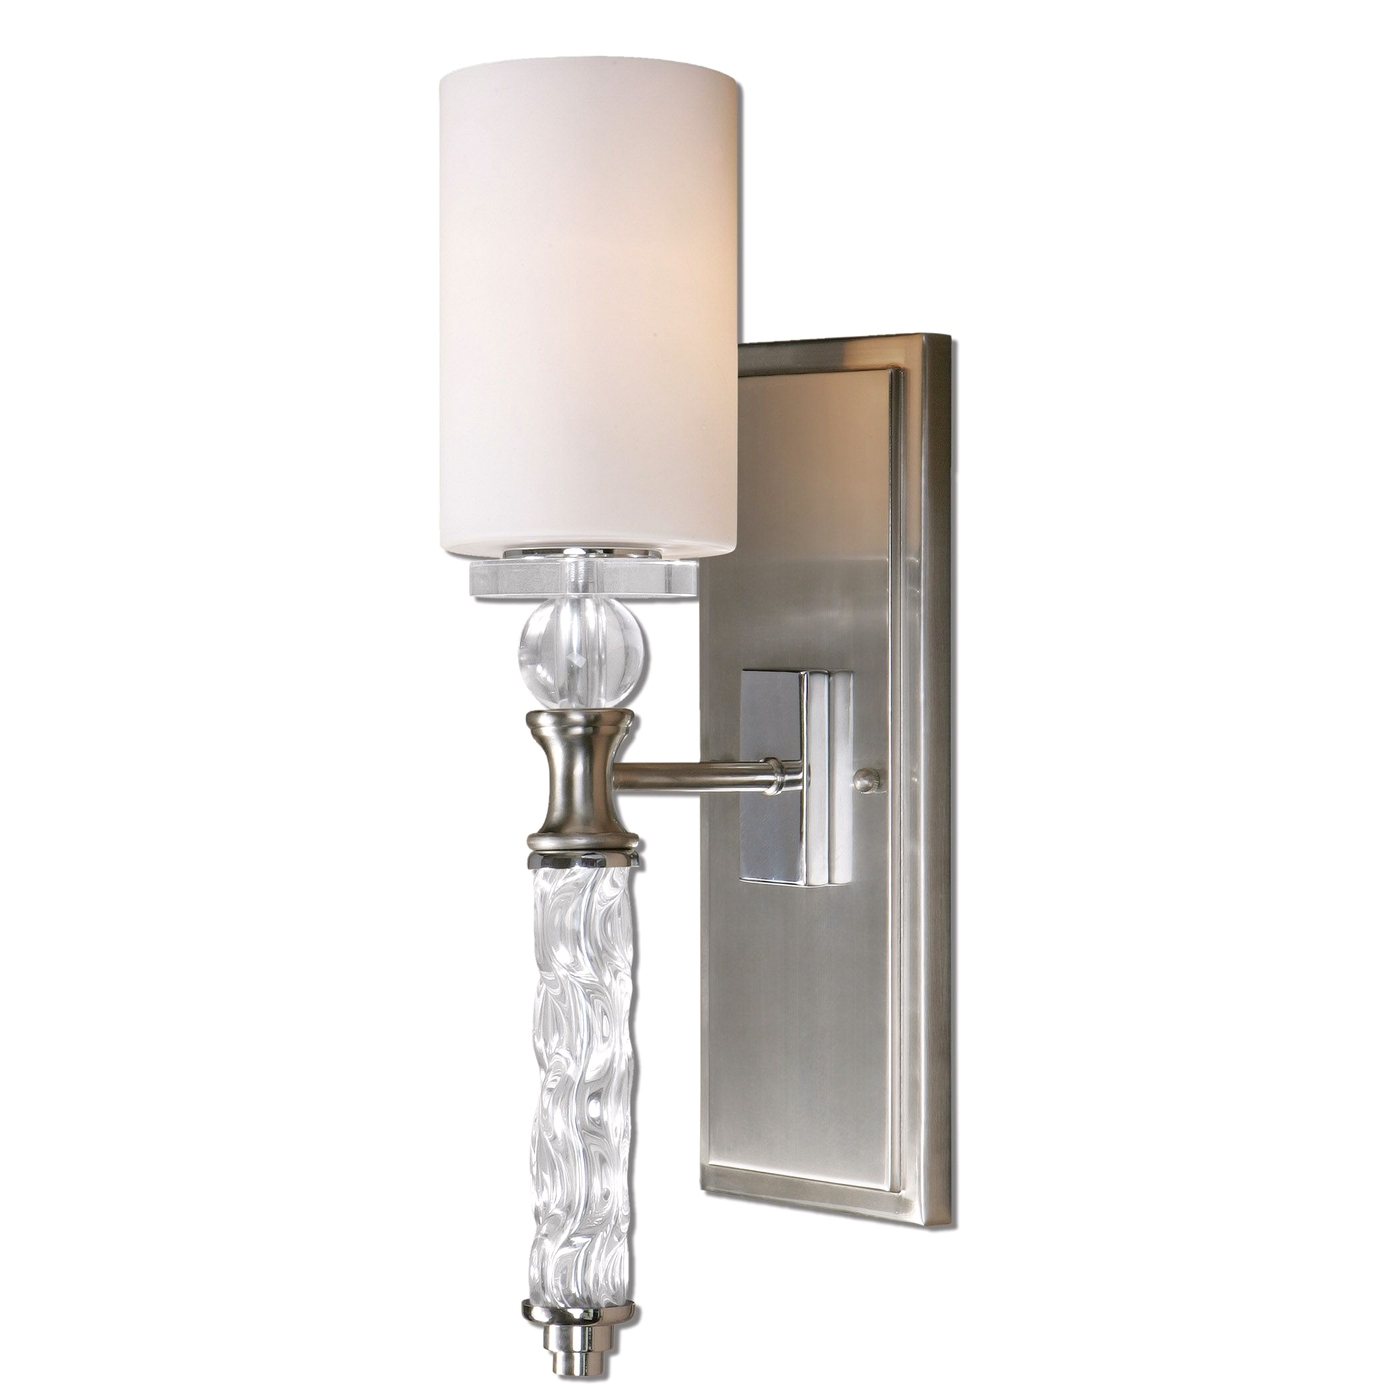 Modern Wall Sconces Italian : Campania Modern 1 Light Wall Sconce 22486